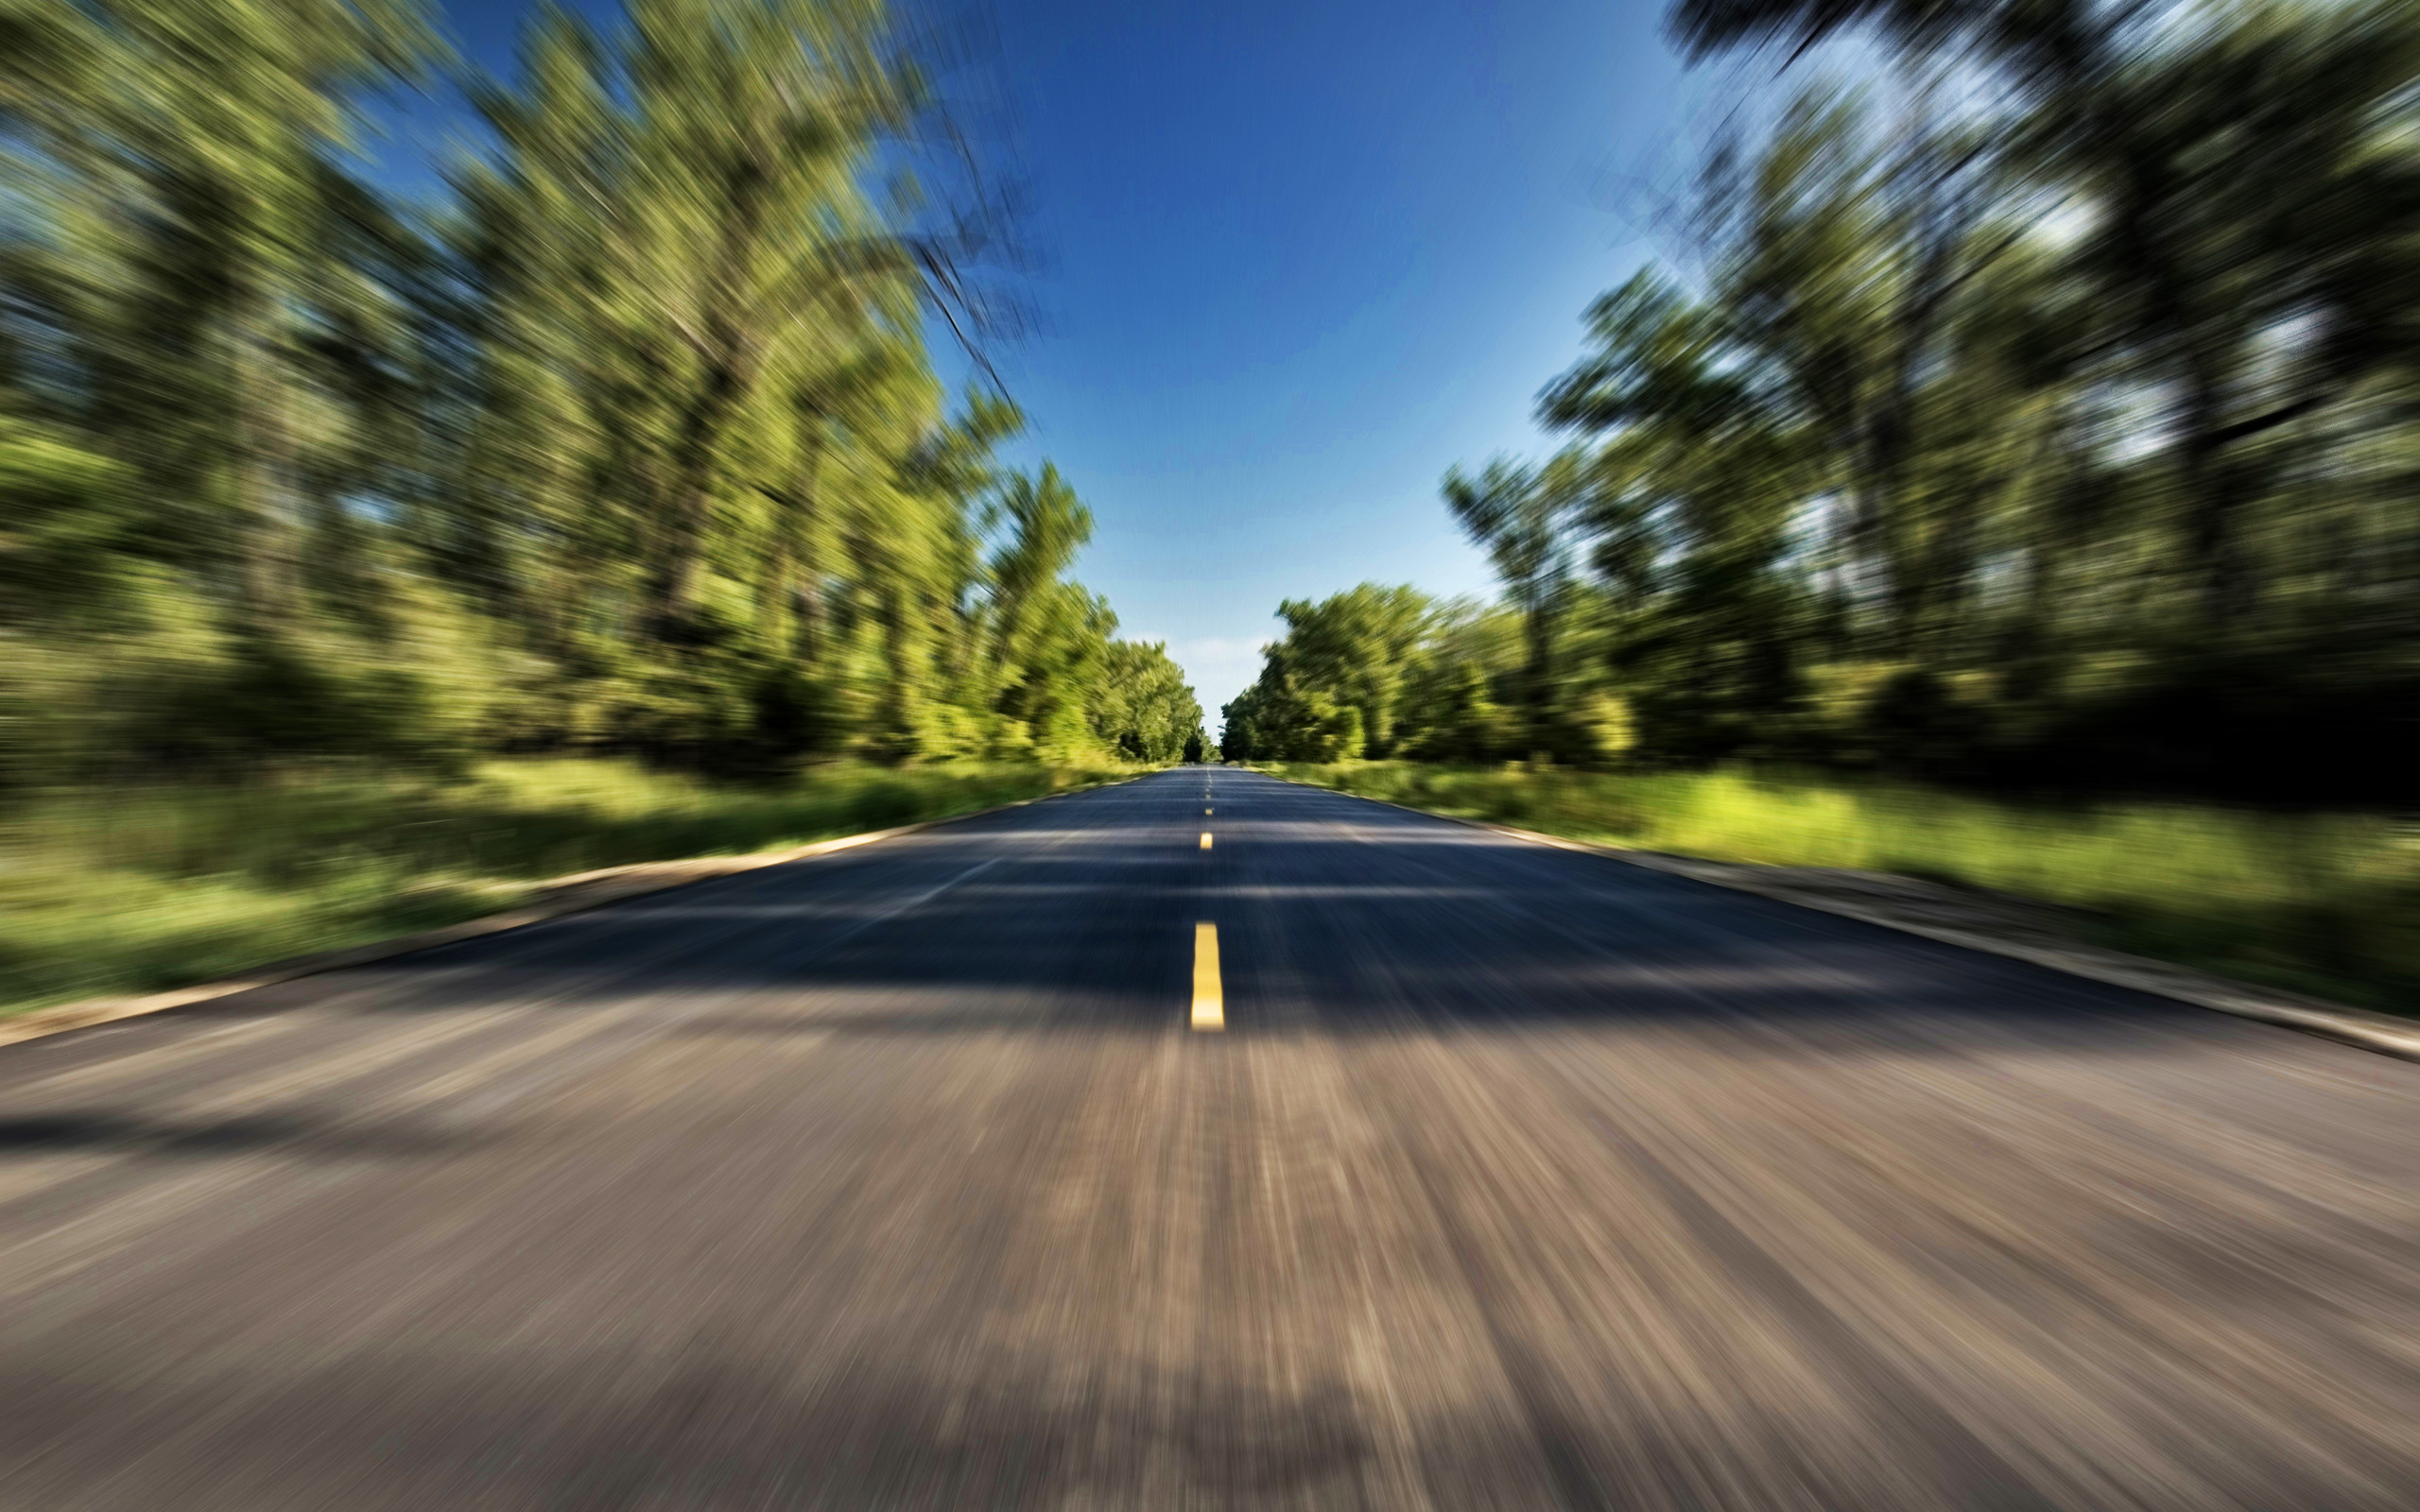 trees_blur_velocity_speed_motion_fast_highway_tree_desktop_2560x1600_wallpaper-334569